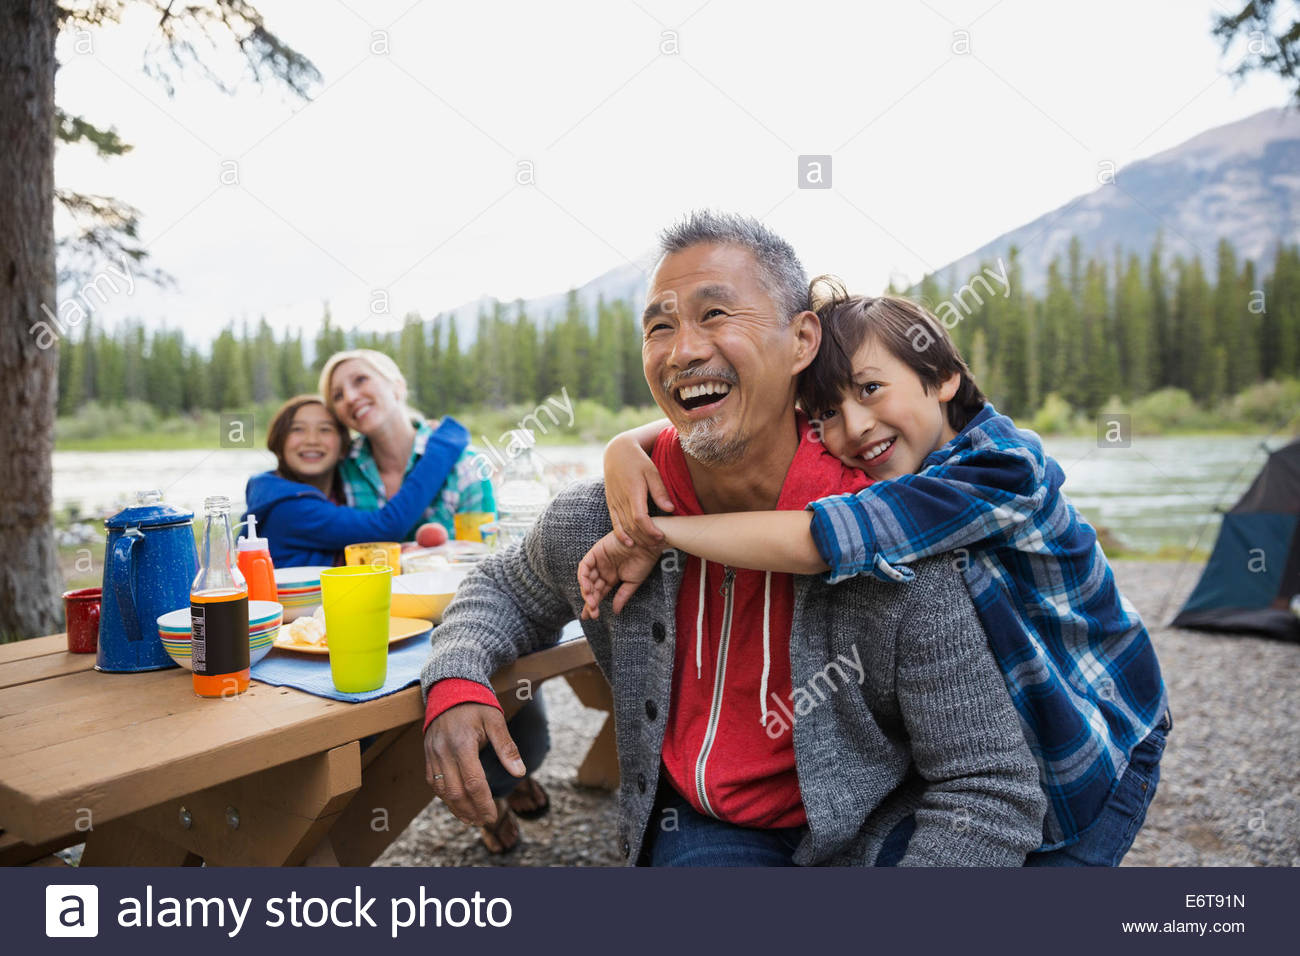 Family relaxing together at campsite Photo Stock